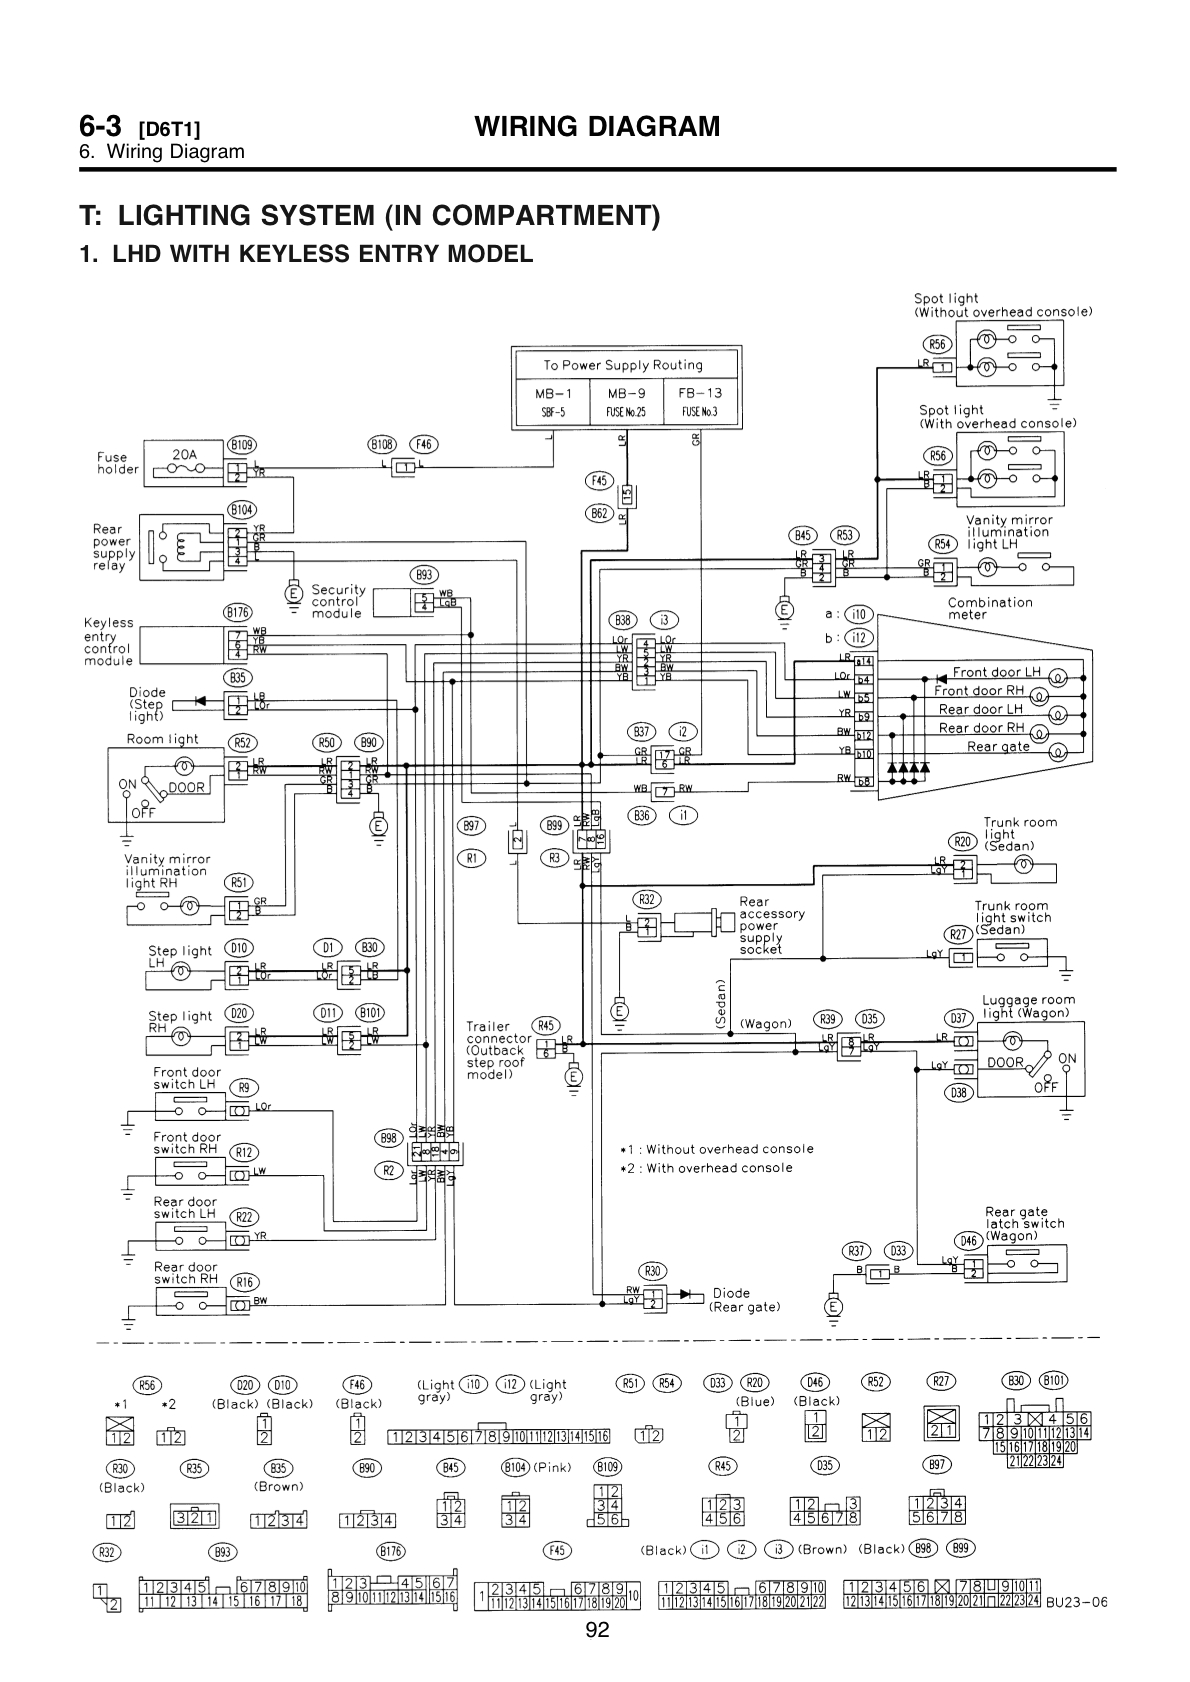 1997 subaru legacy wiring diagram 1997 subaru legacy wiring diagram beautiful wiring schmatic 98 perfect subaru stereo wiring diagram ponent 7d jpg